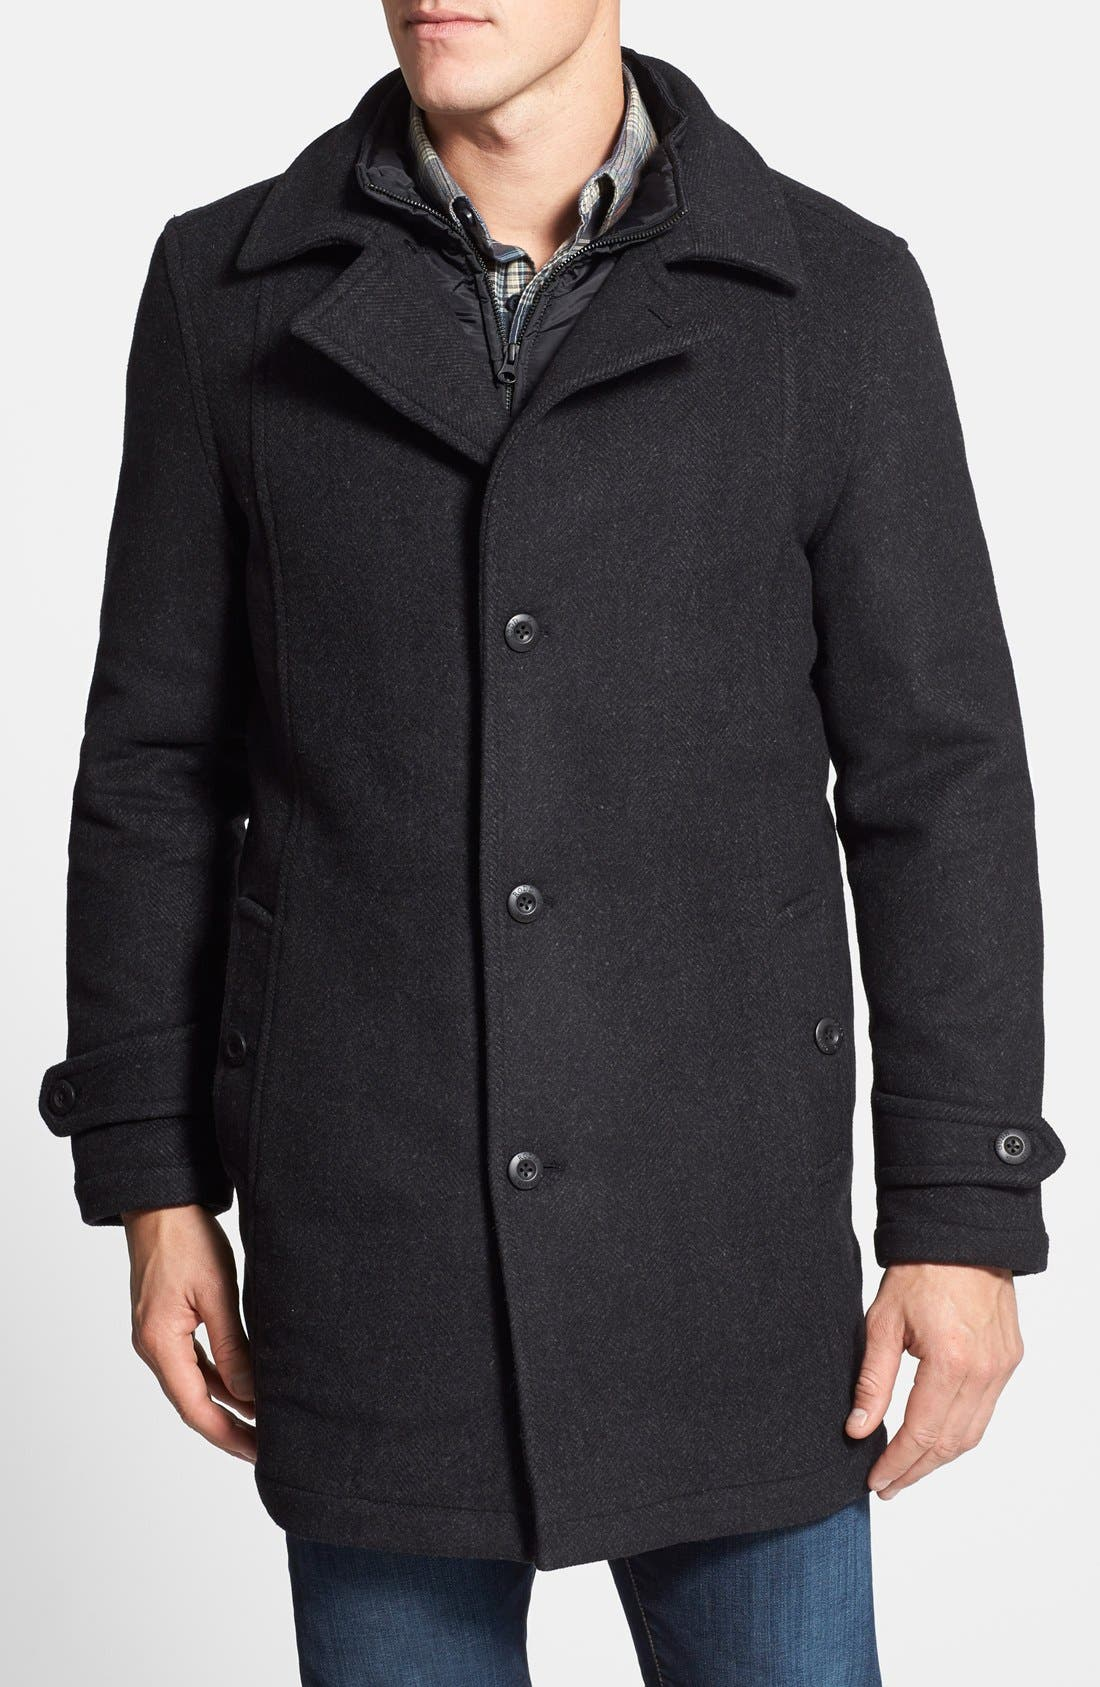 Rodd & Gunn 'Westown' 3-in-1 Wool Blend Coat